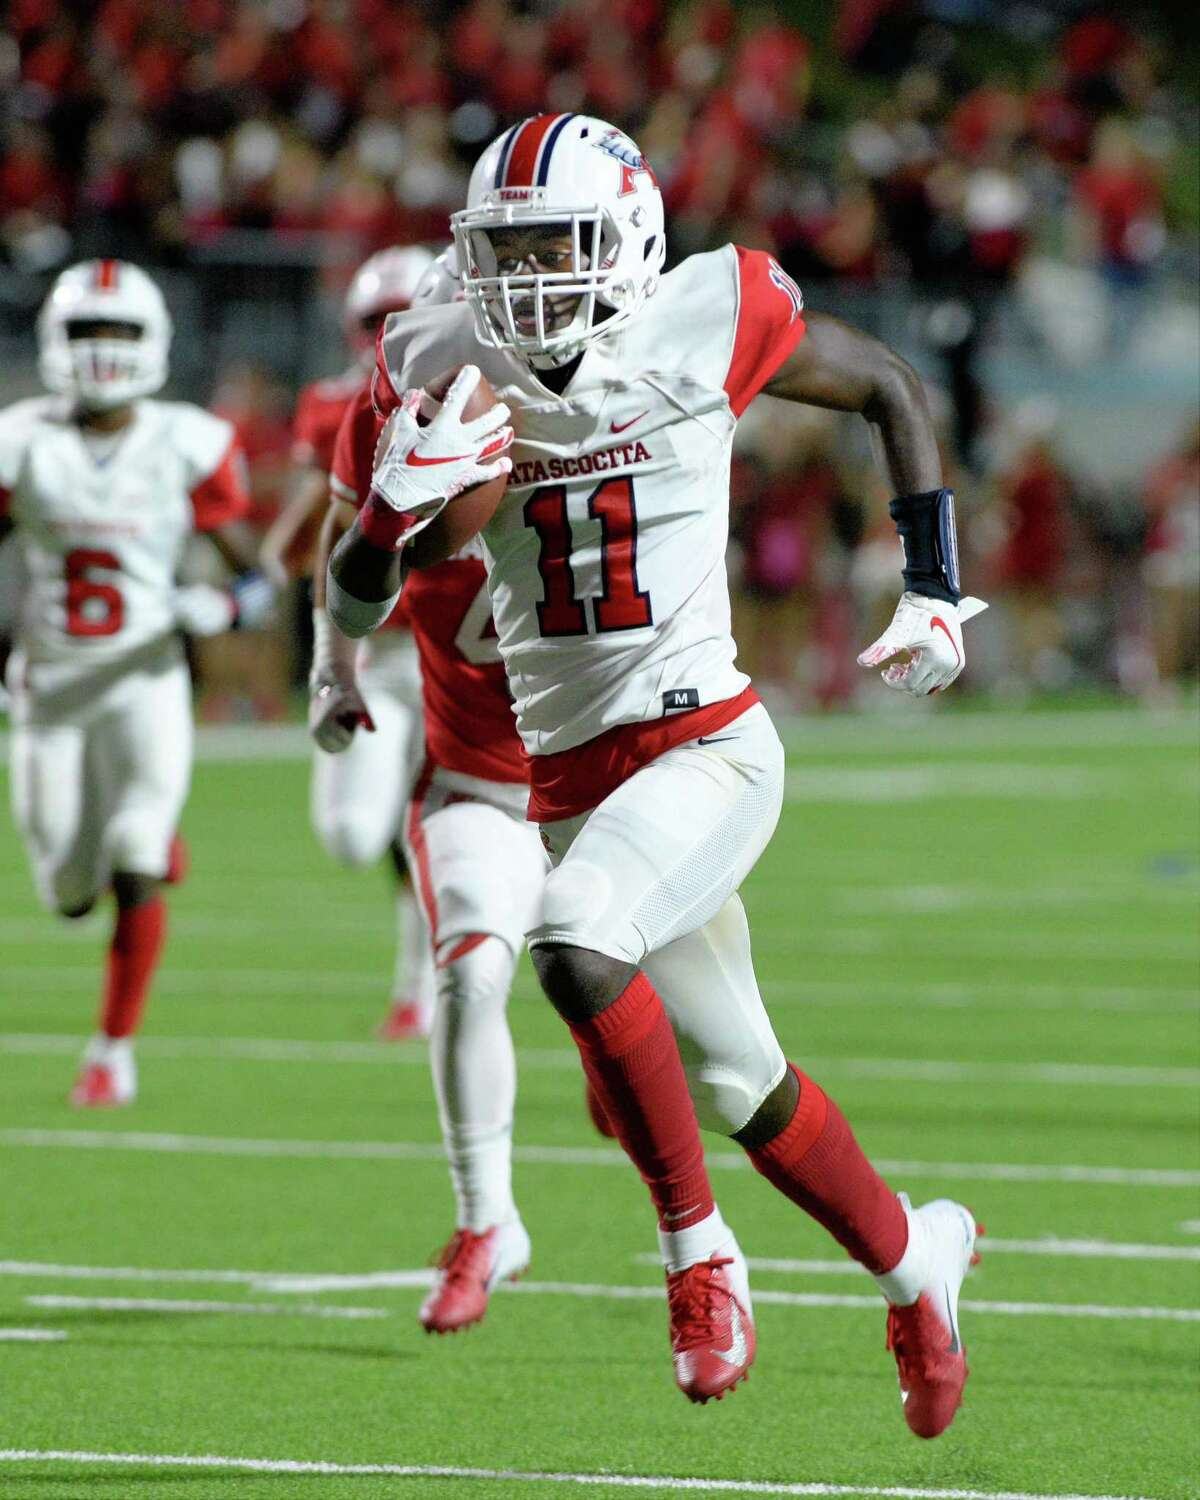 Dylan Robinson (11) of Atascocita rushes for a touchdown in the third quarter of a high school football game between the Katy Tigers and the Atascocita Eagles on Saturday, September 8, 2018 at Legacy Stadium, Katy, TX.